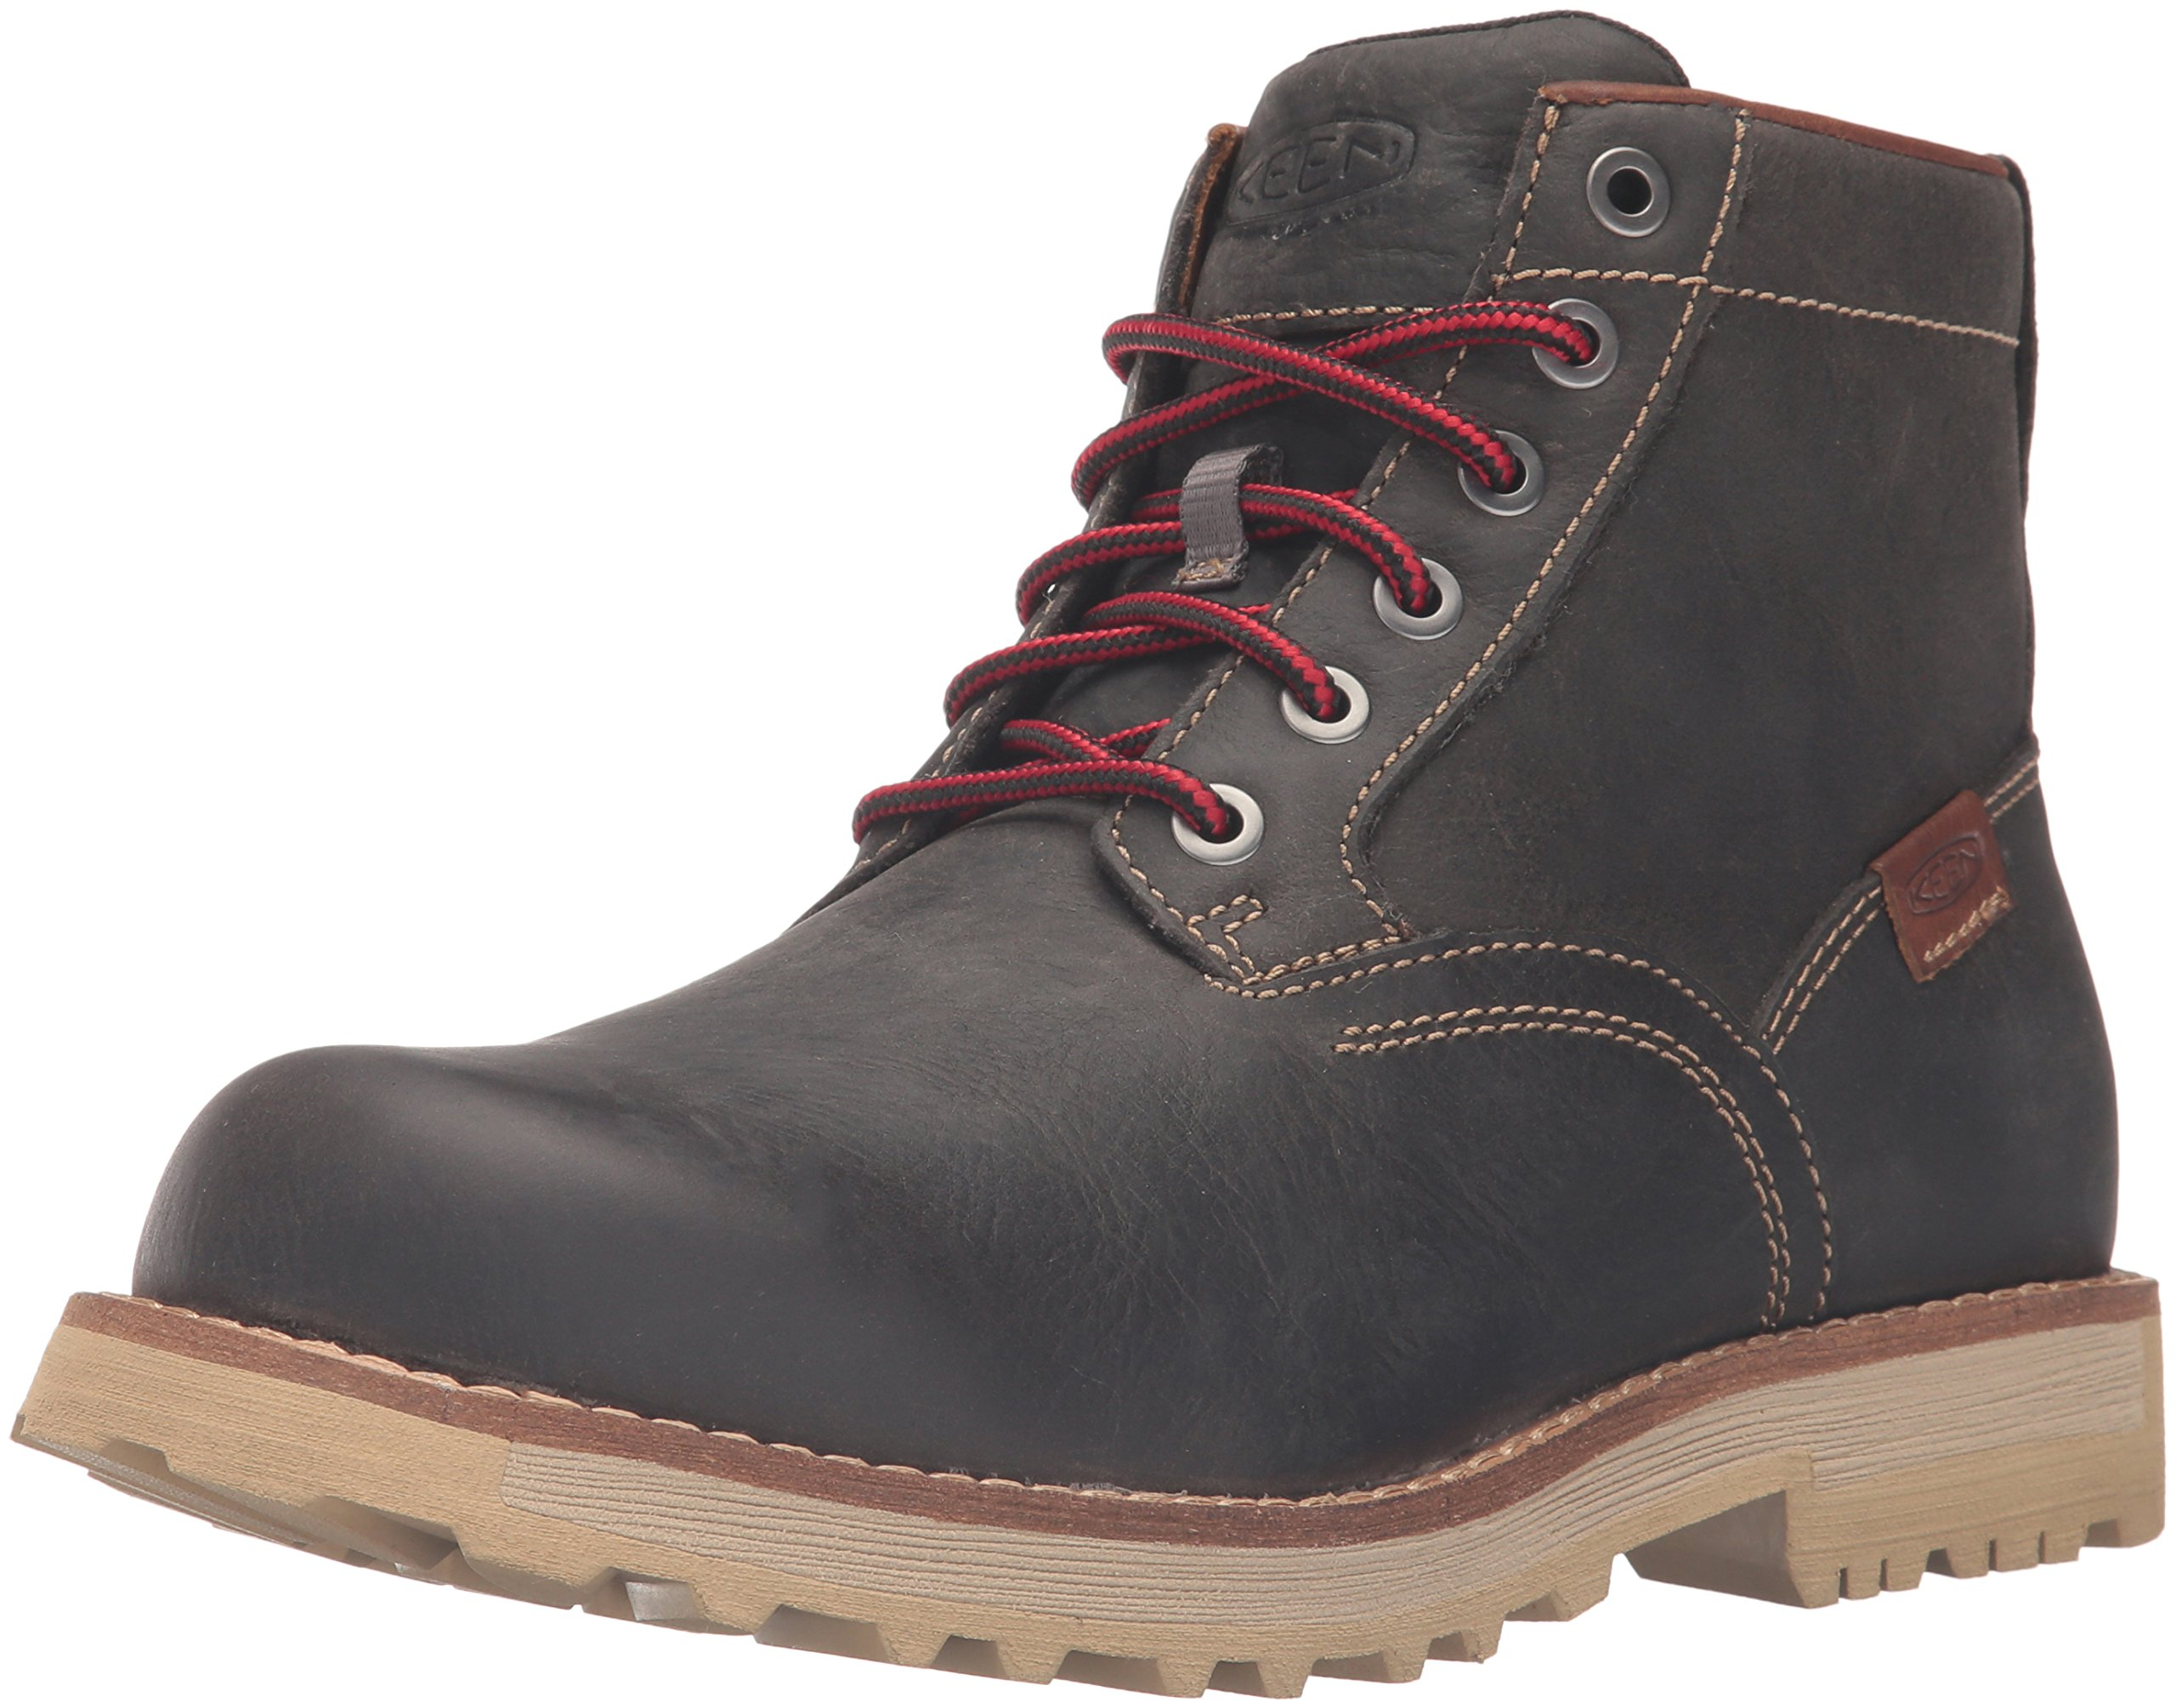 KEEN Men's The 59 Boot, Magnet Full Grain, 7 M US by KEEN